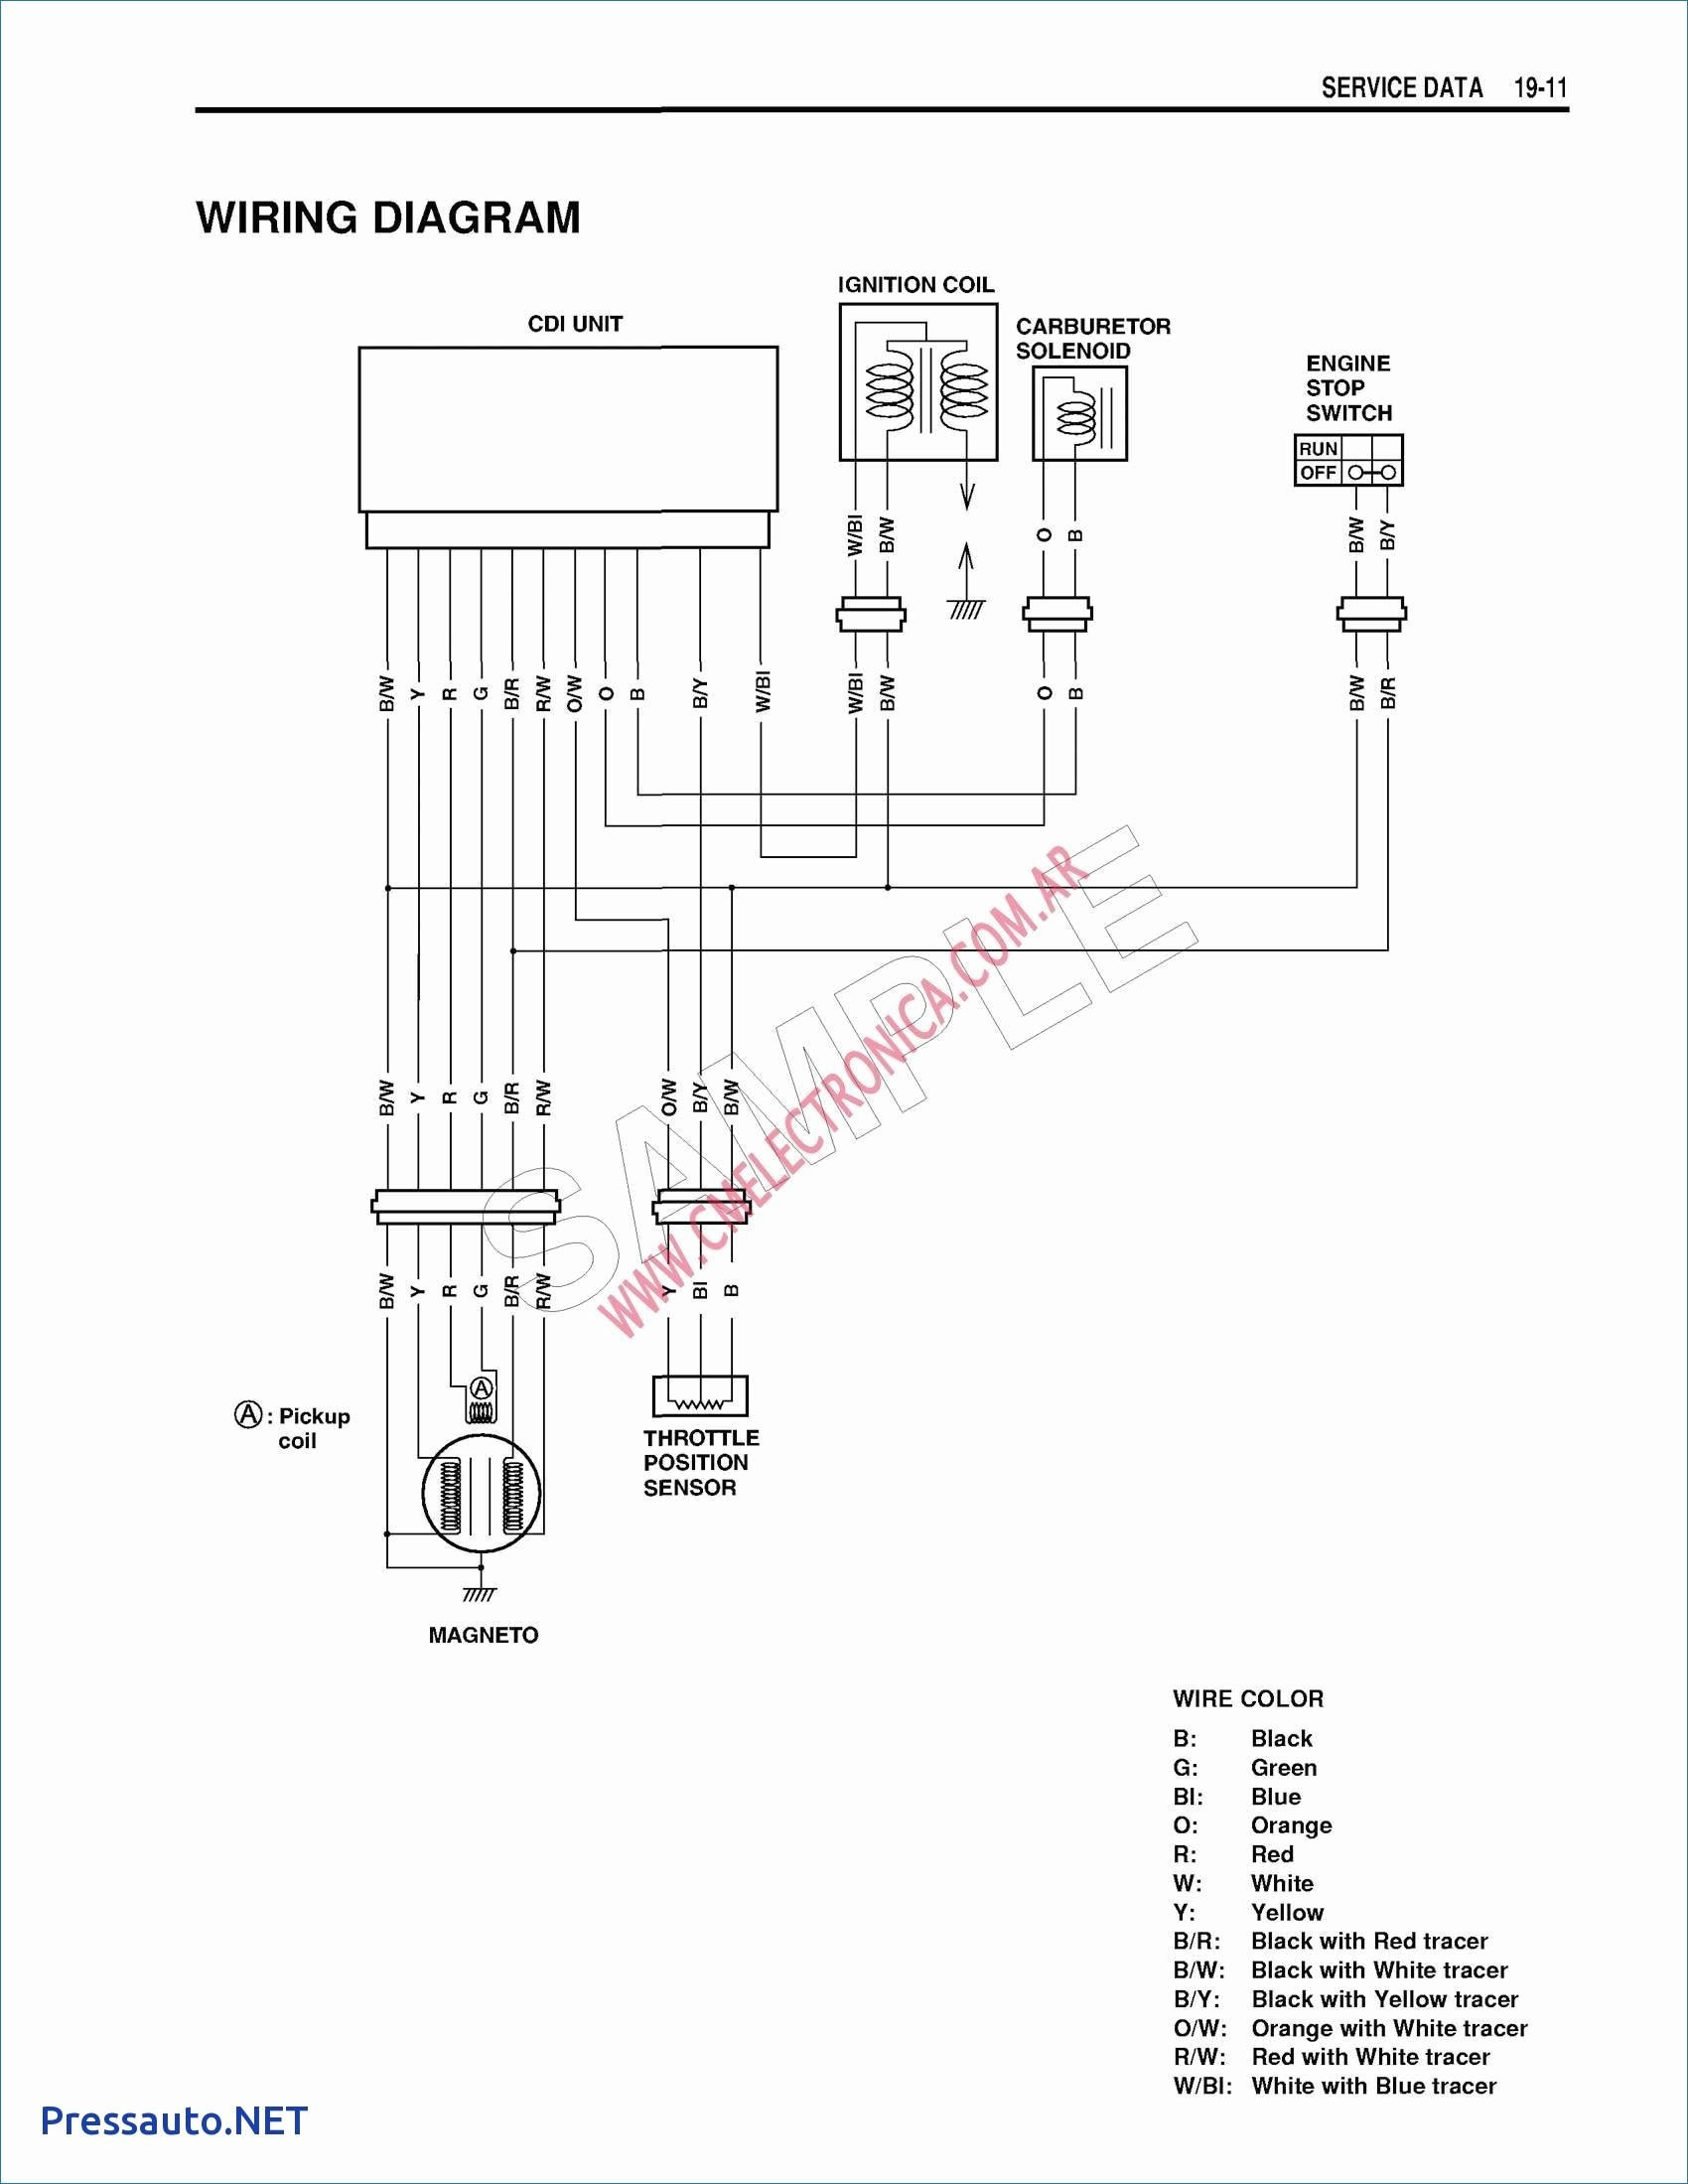 5 Pin Cdi Box Wiring Diagram Beautiful 6 Pin Cdi Wiring Diagram Lovely Wire Diagram Diagram